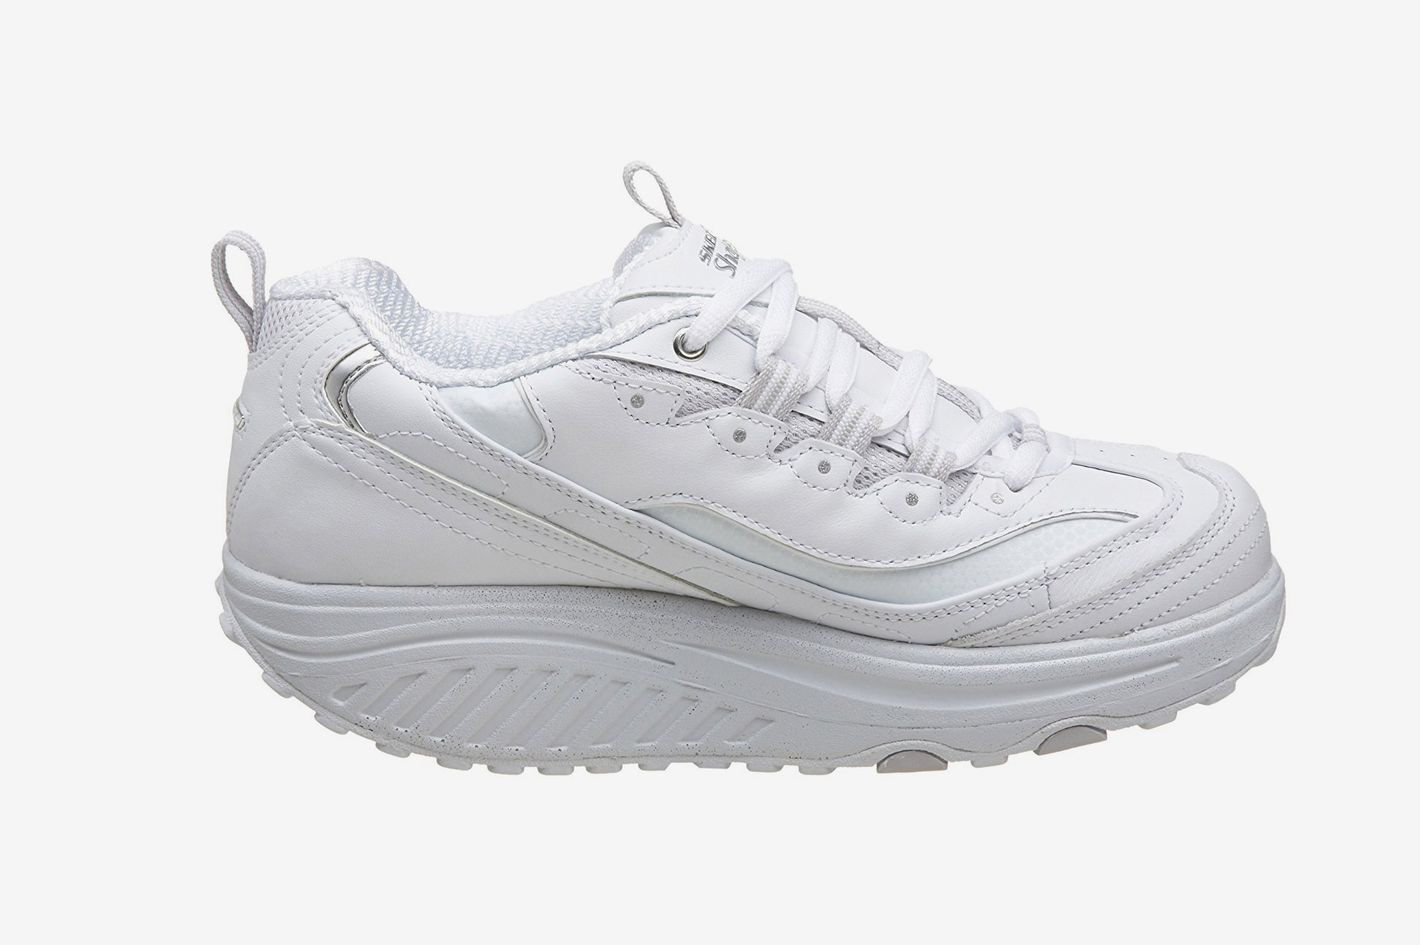 770f5f60db25 15 Best White Sneakers for Women 2018